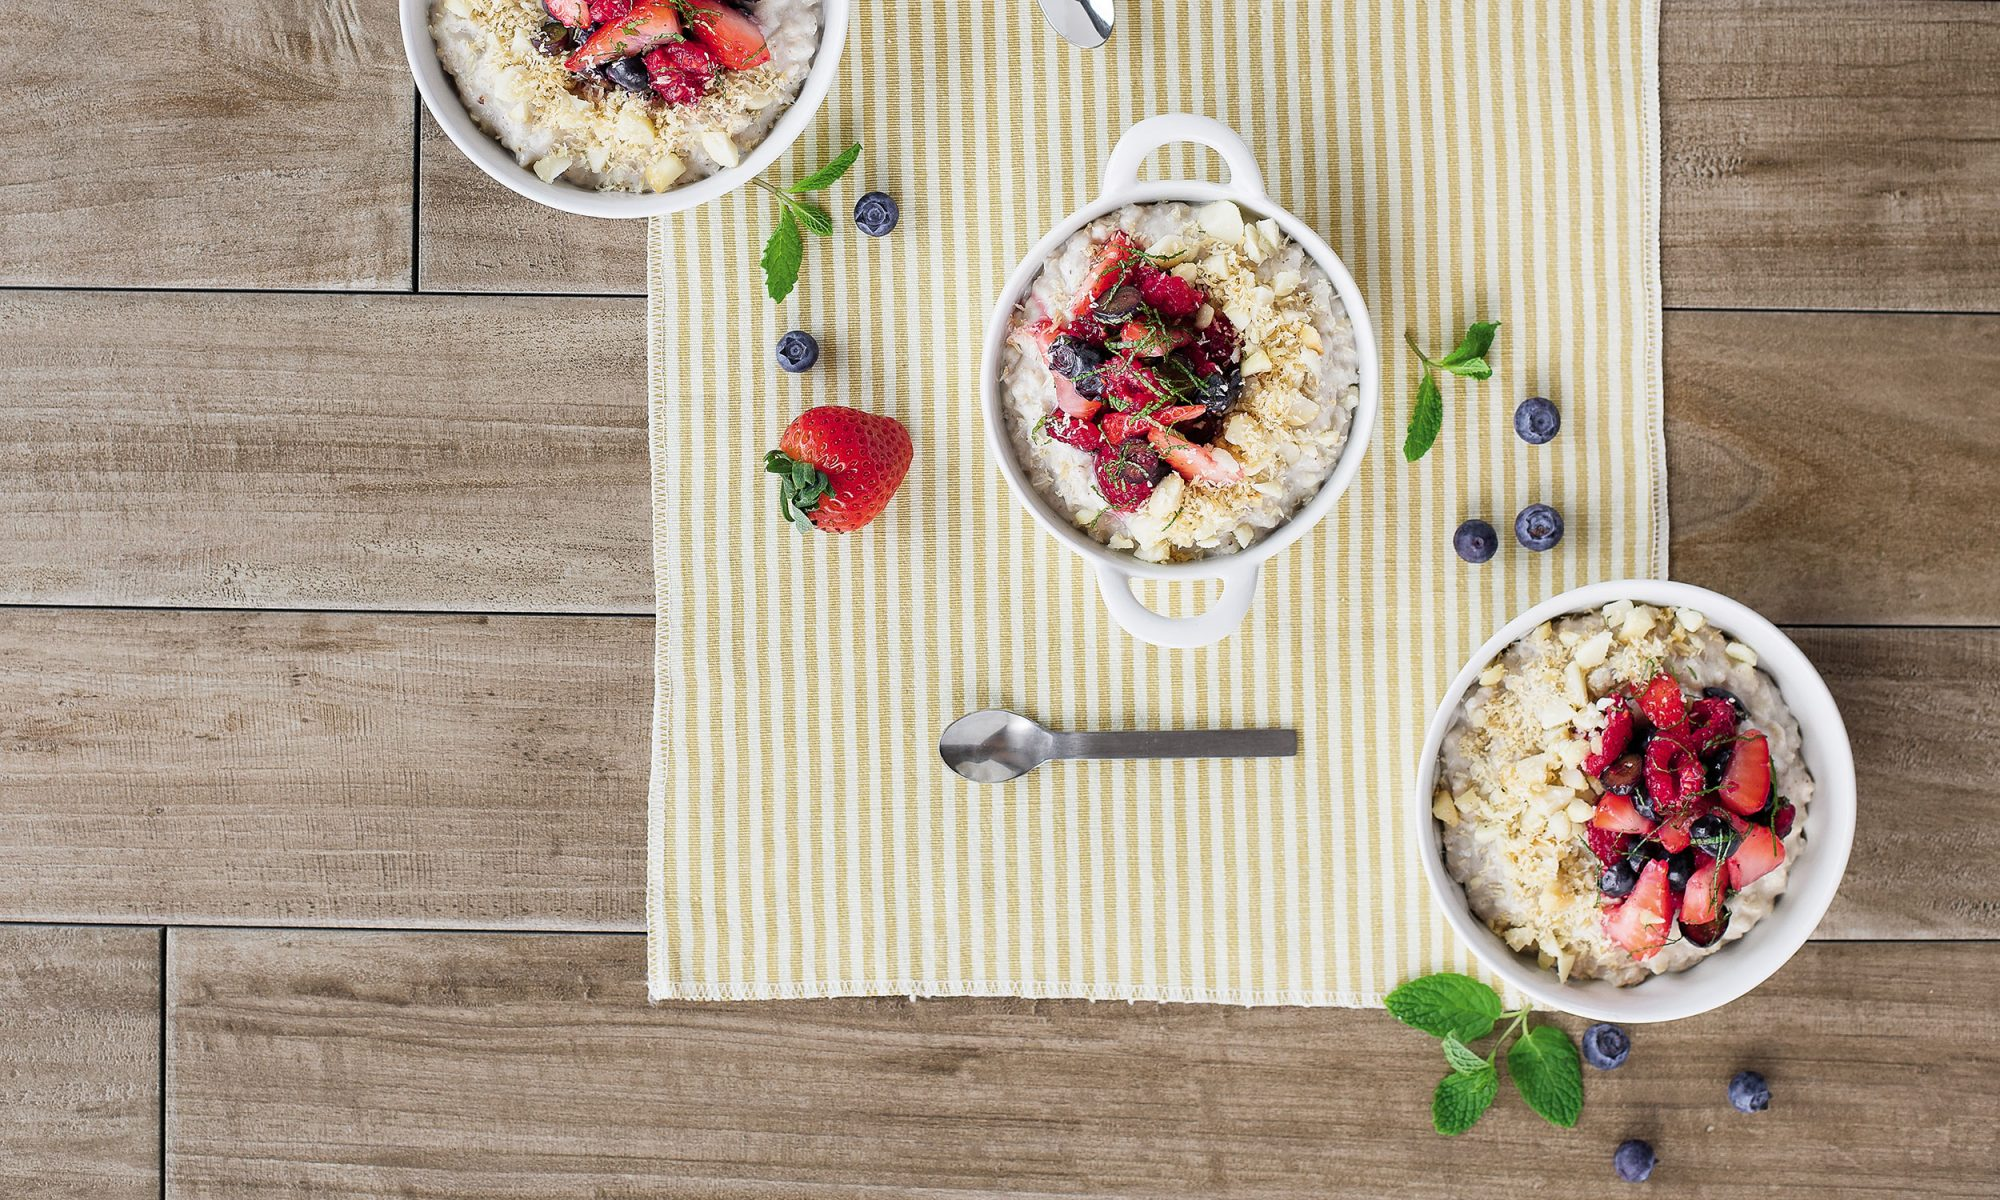 Peanut Butter and Jelly Rice Pudding